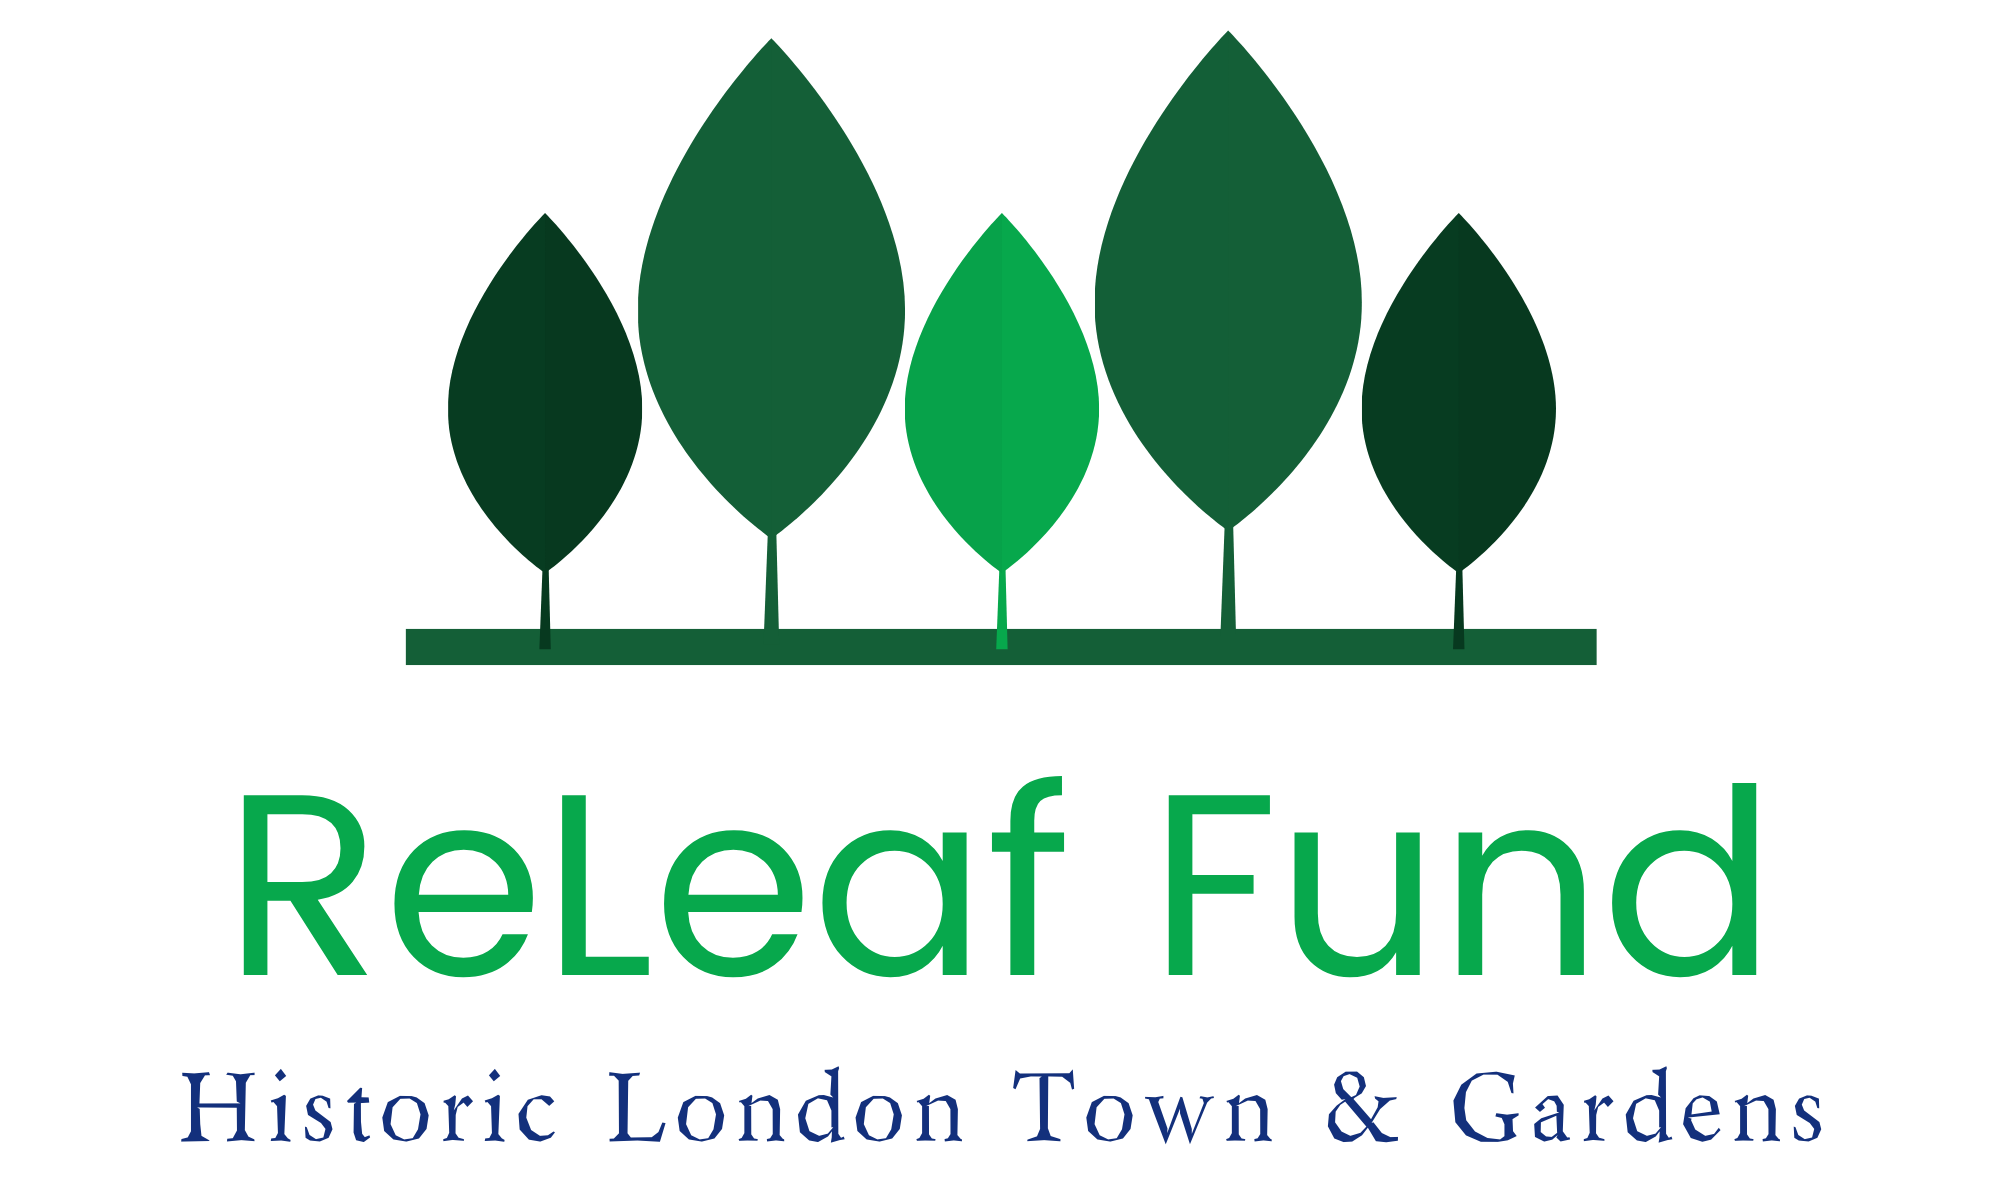 Donate to the ReLeaf Fund